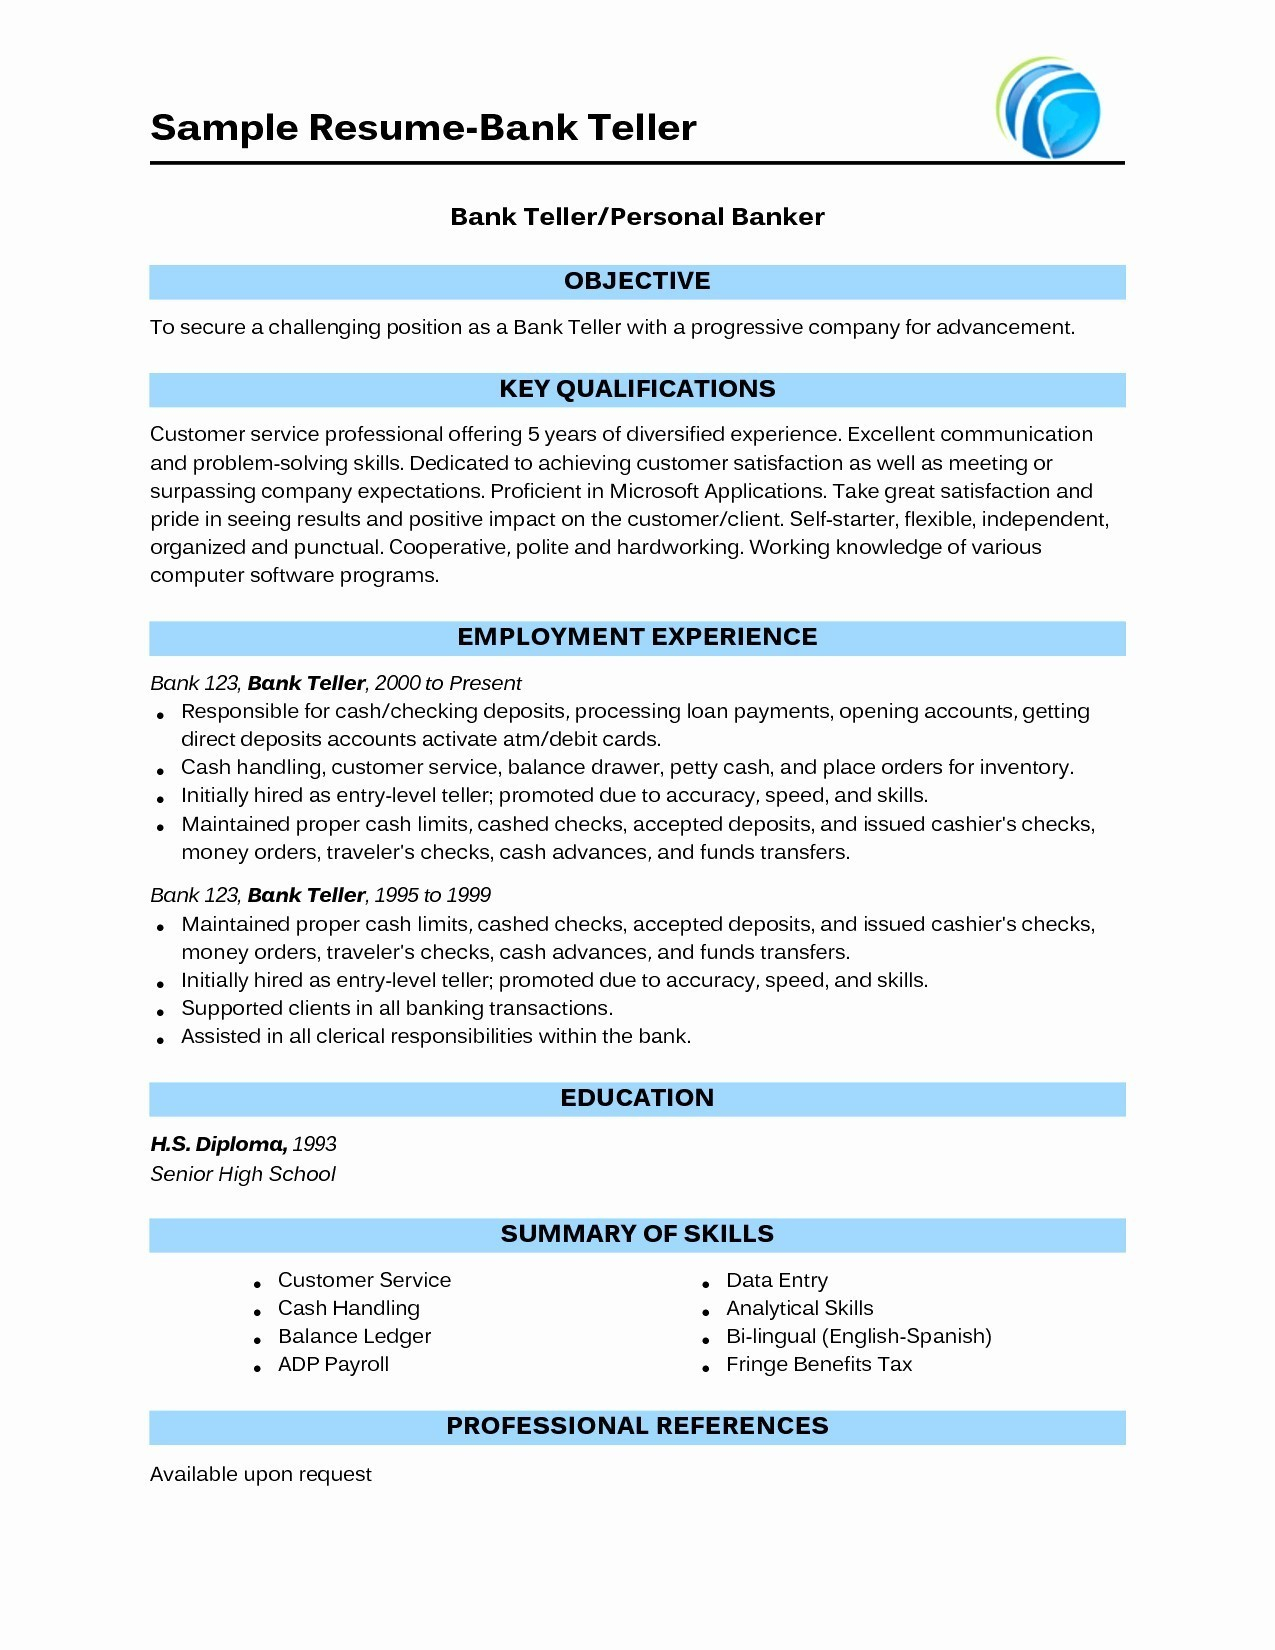 Professional Resume Builder - Resume Builder Awesome Awesome Best Resume Maker Awesome Resume